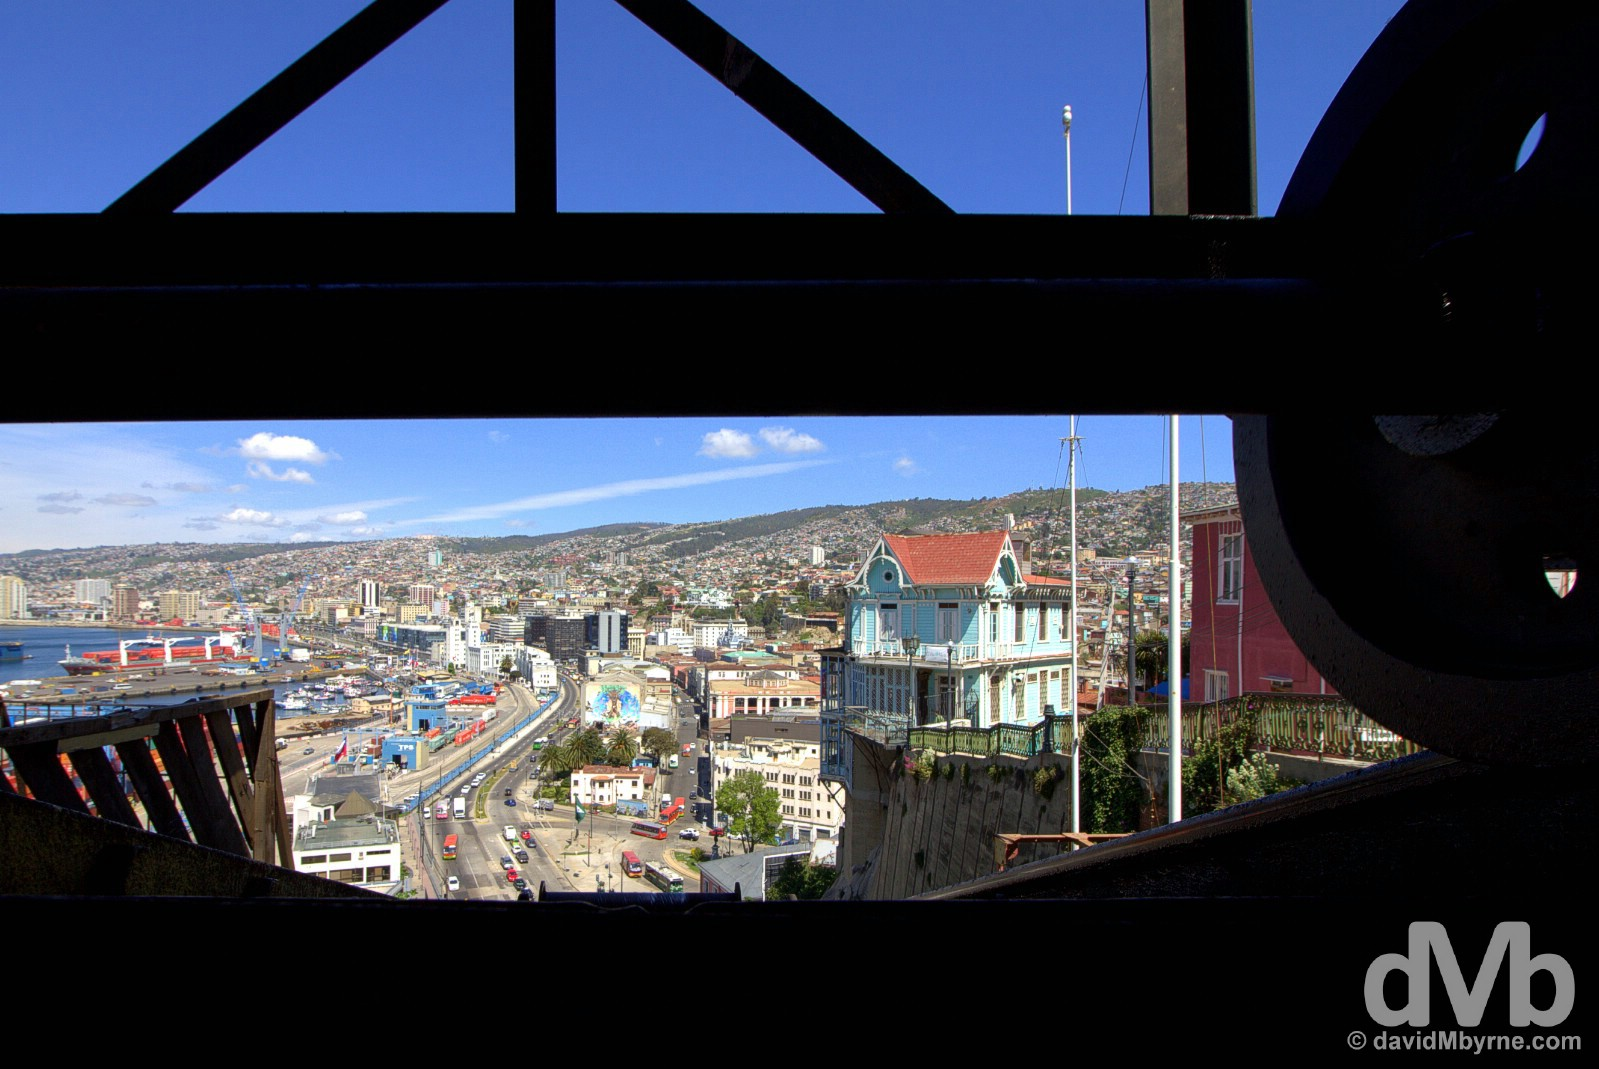 The undercarriage od the Ascensor Artilleria in Valparaiso, Chile. October 8, 2015.